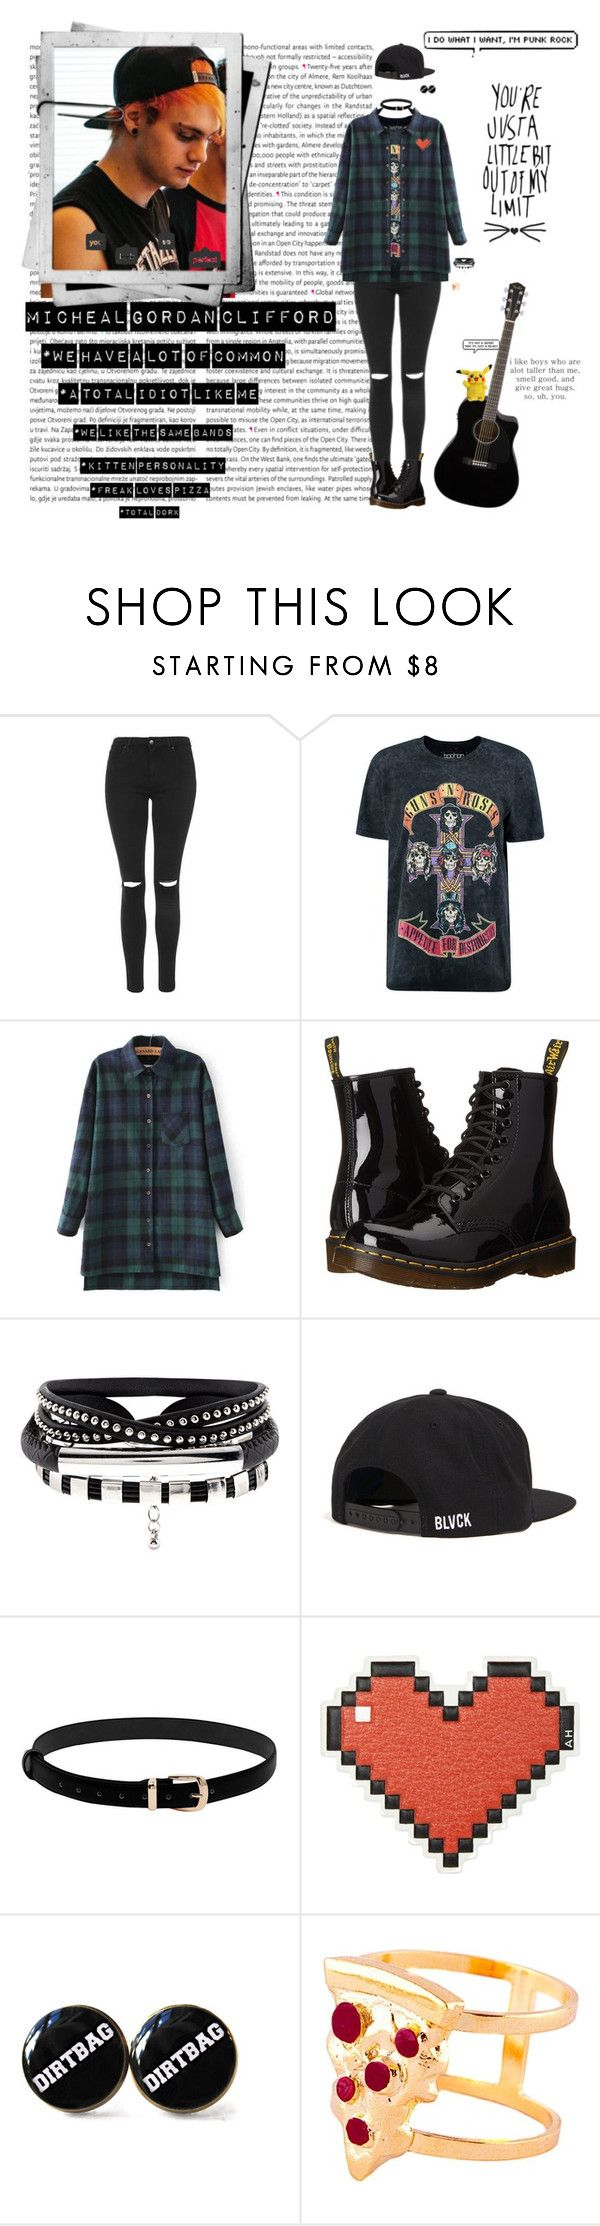 """""""5 SECONDS OF FASHION"""" by kingkittykat123 ❤ liked on Polyvore featuring Oris, Topshop, Boohoo, Dr. Martens, Anya Hindmarch and Glenda López"""